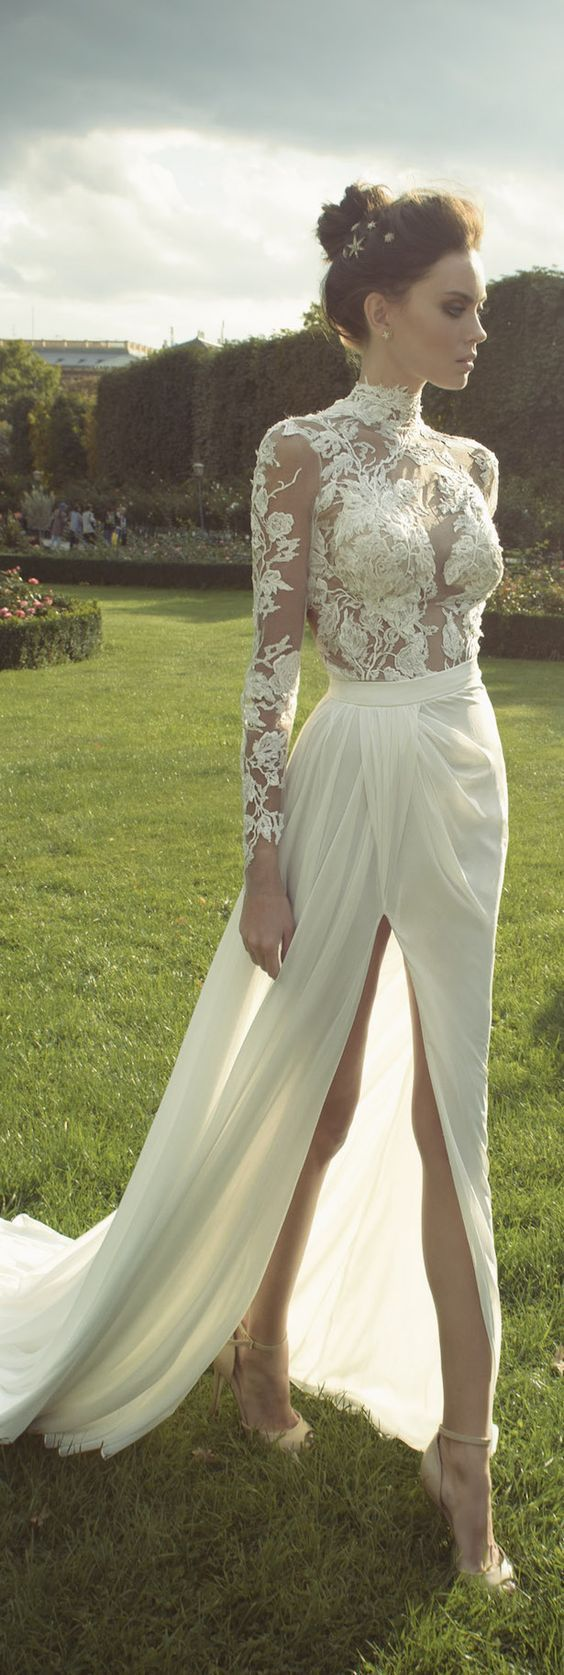 50 Beautiful Lace Wedding Dresses To Die For | Ich freue mich auf ...